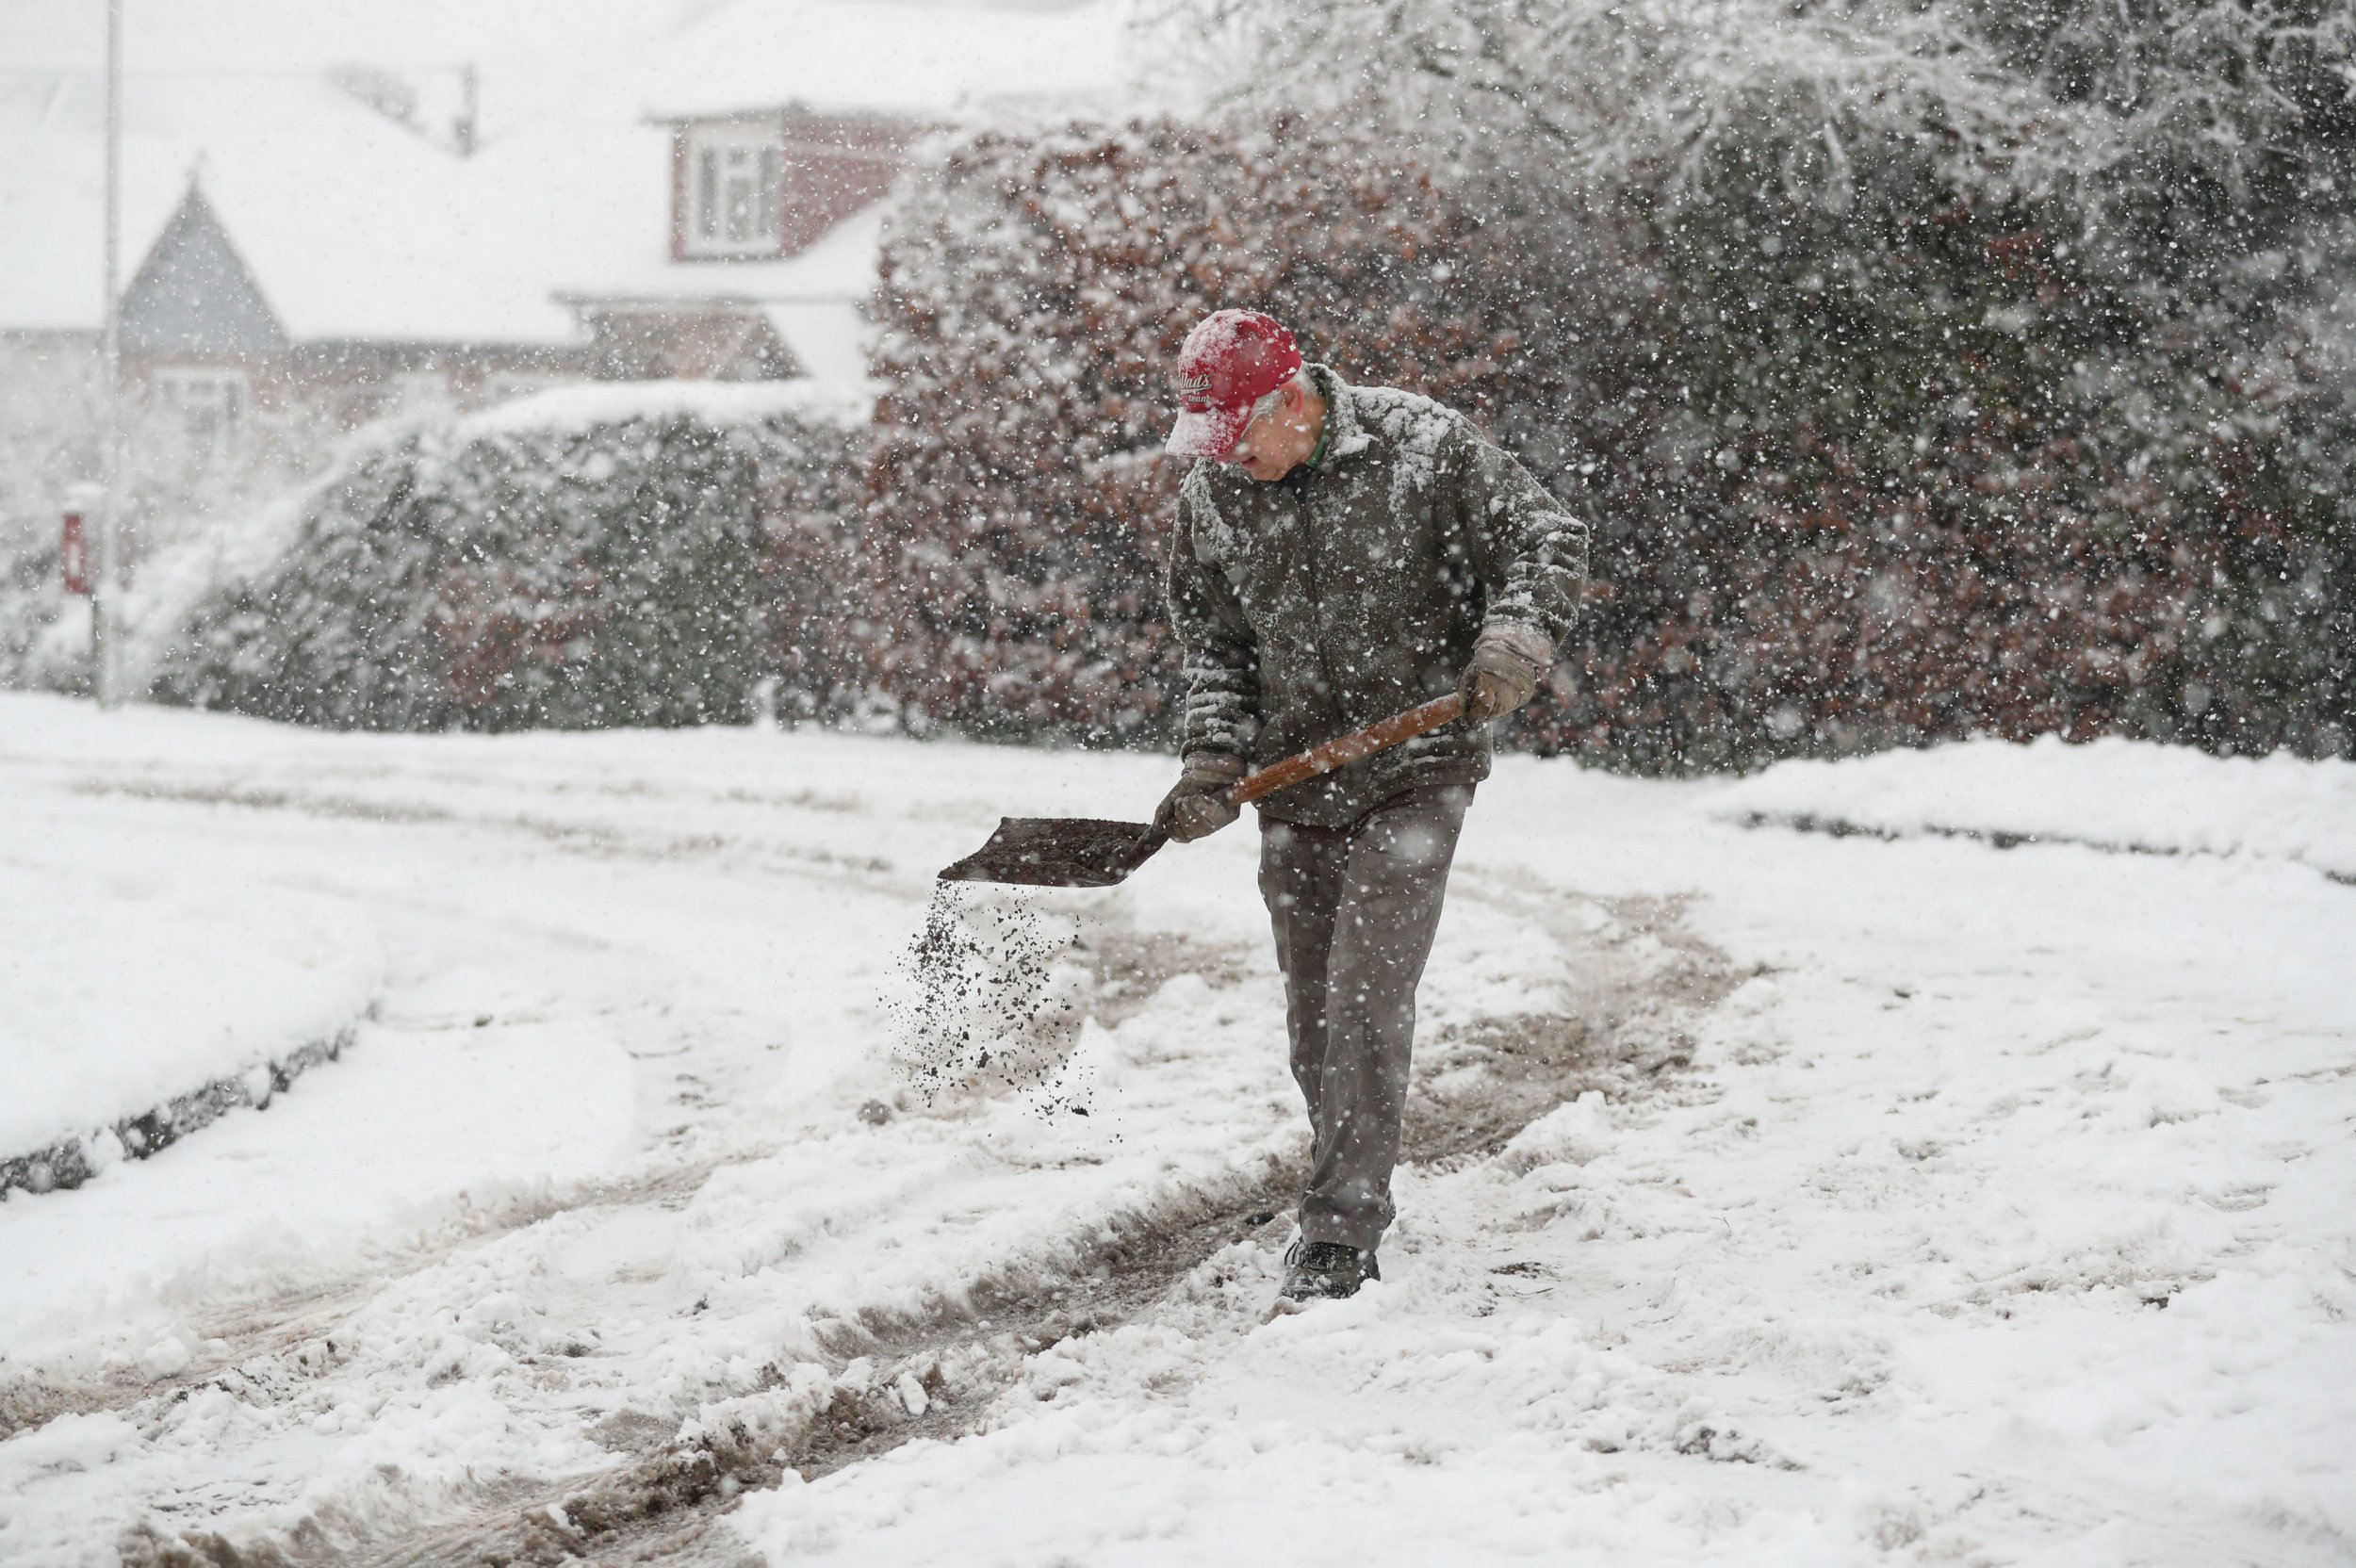 A local resident grits his road in Basingstoke, Hampshire. PRESS ASSOCIATION Photo. Picture date: Friday February 1, 2019. See PA story WEATHER Snow. Photo credit should read: Andrew Matthews/PA Wire